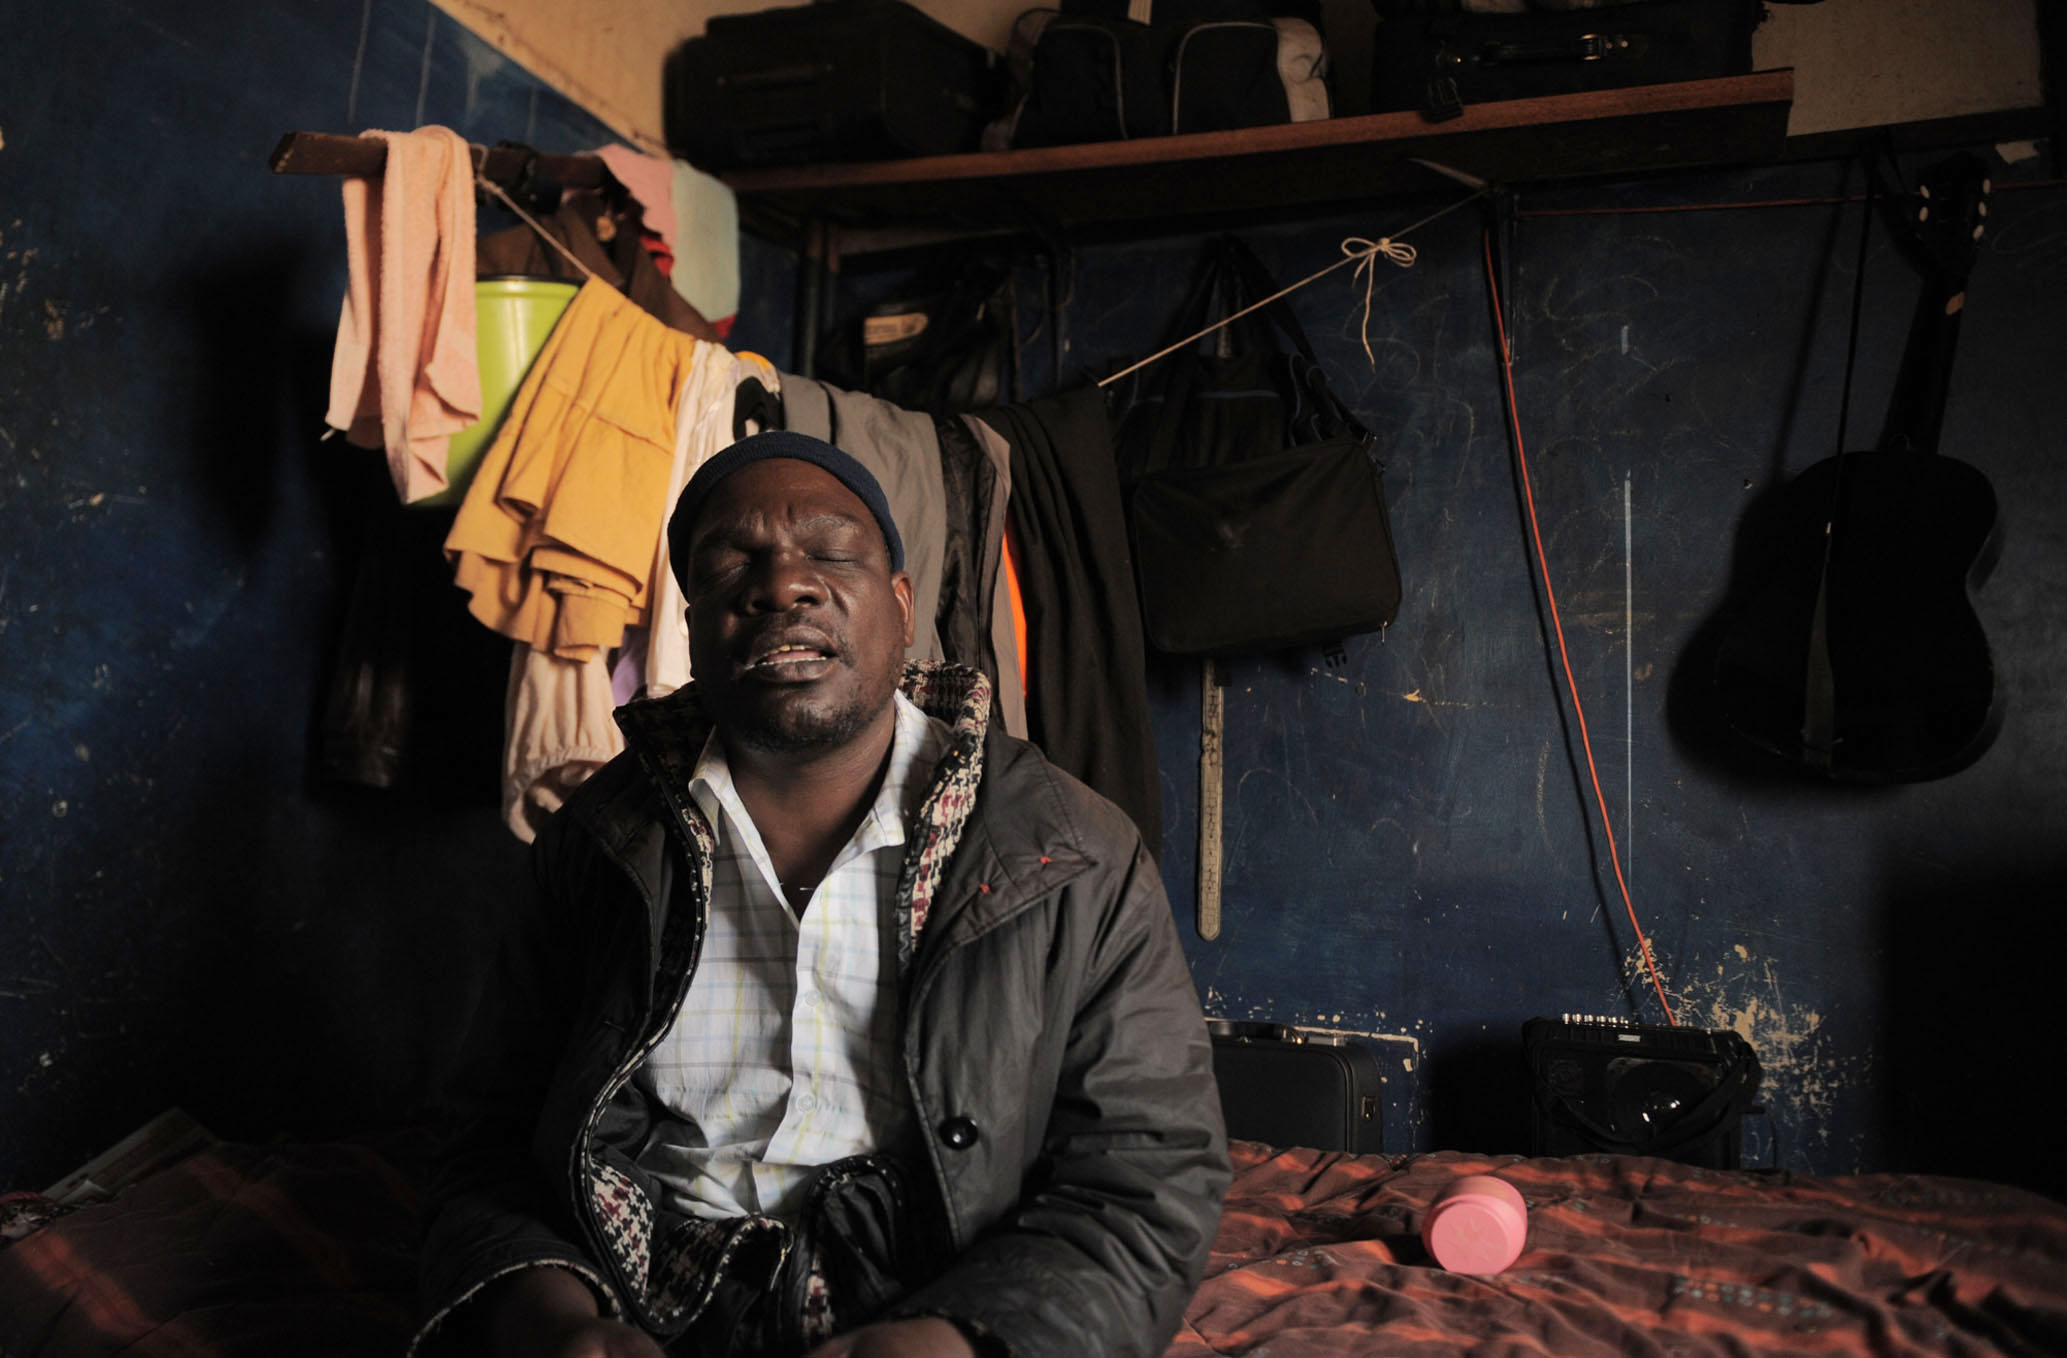 Samuel Mokwena, a blind beggar, in his room at an abandoned building in Johannesburg's inner city